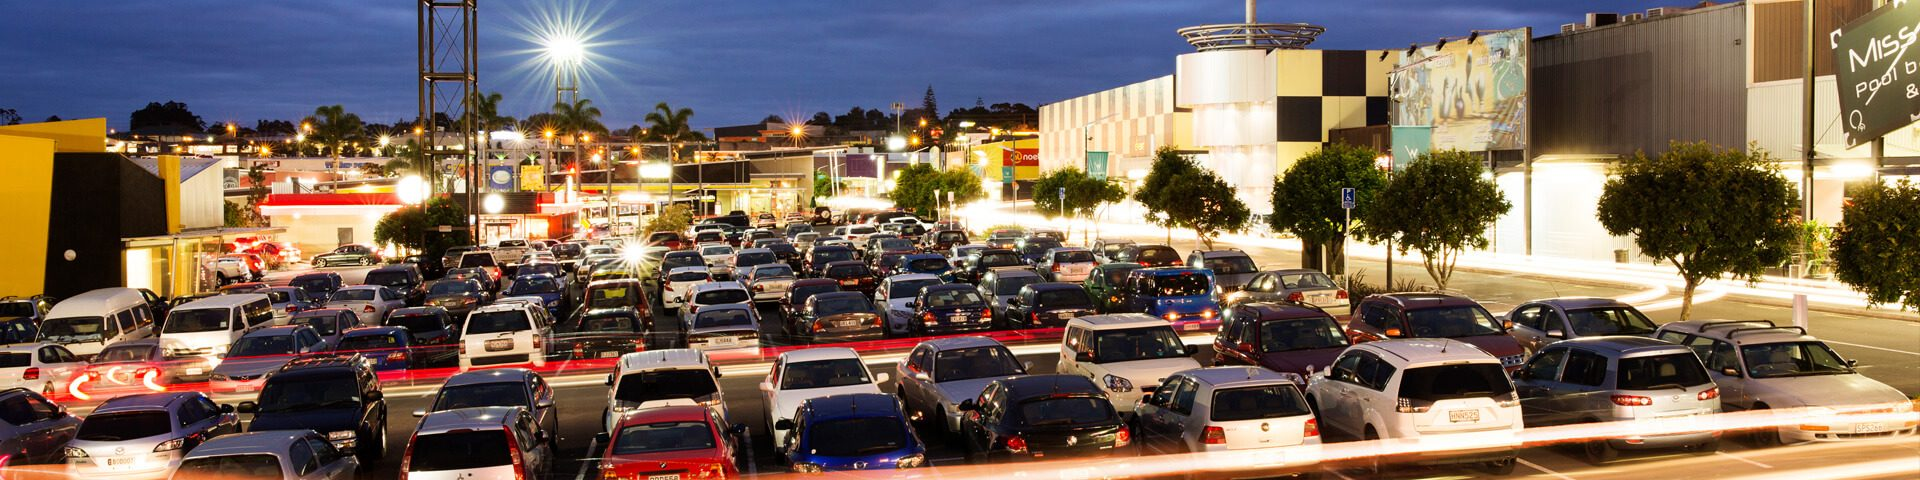 Westgate carpark at night